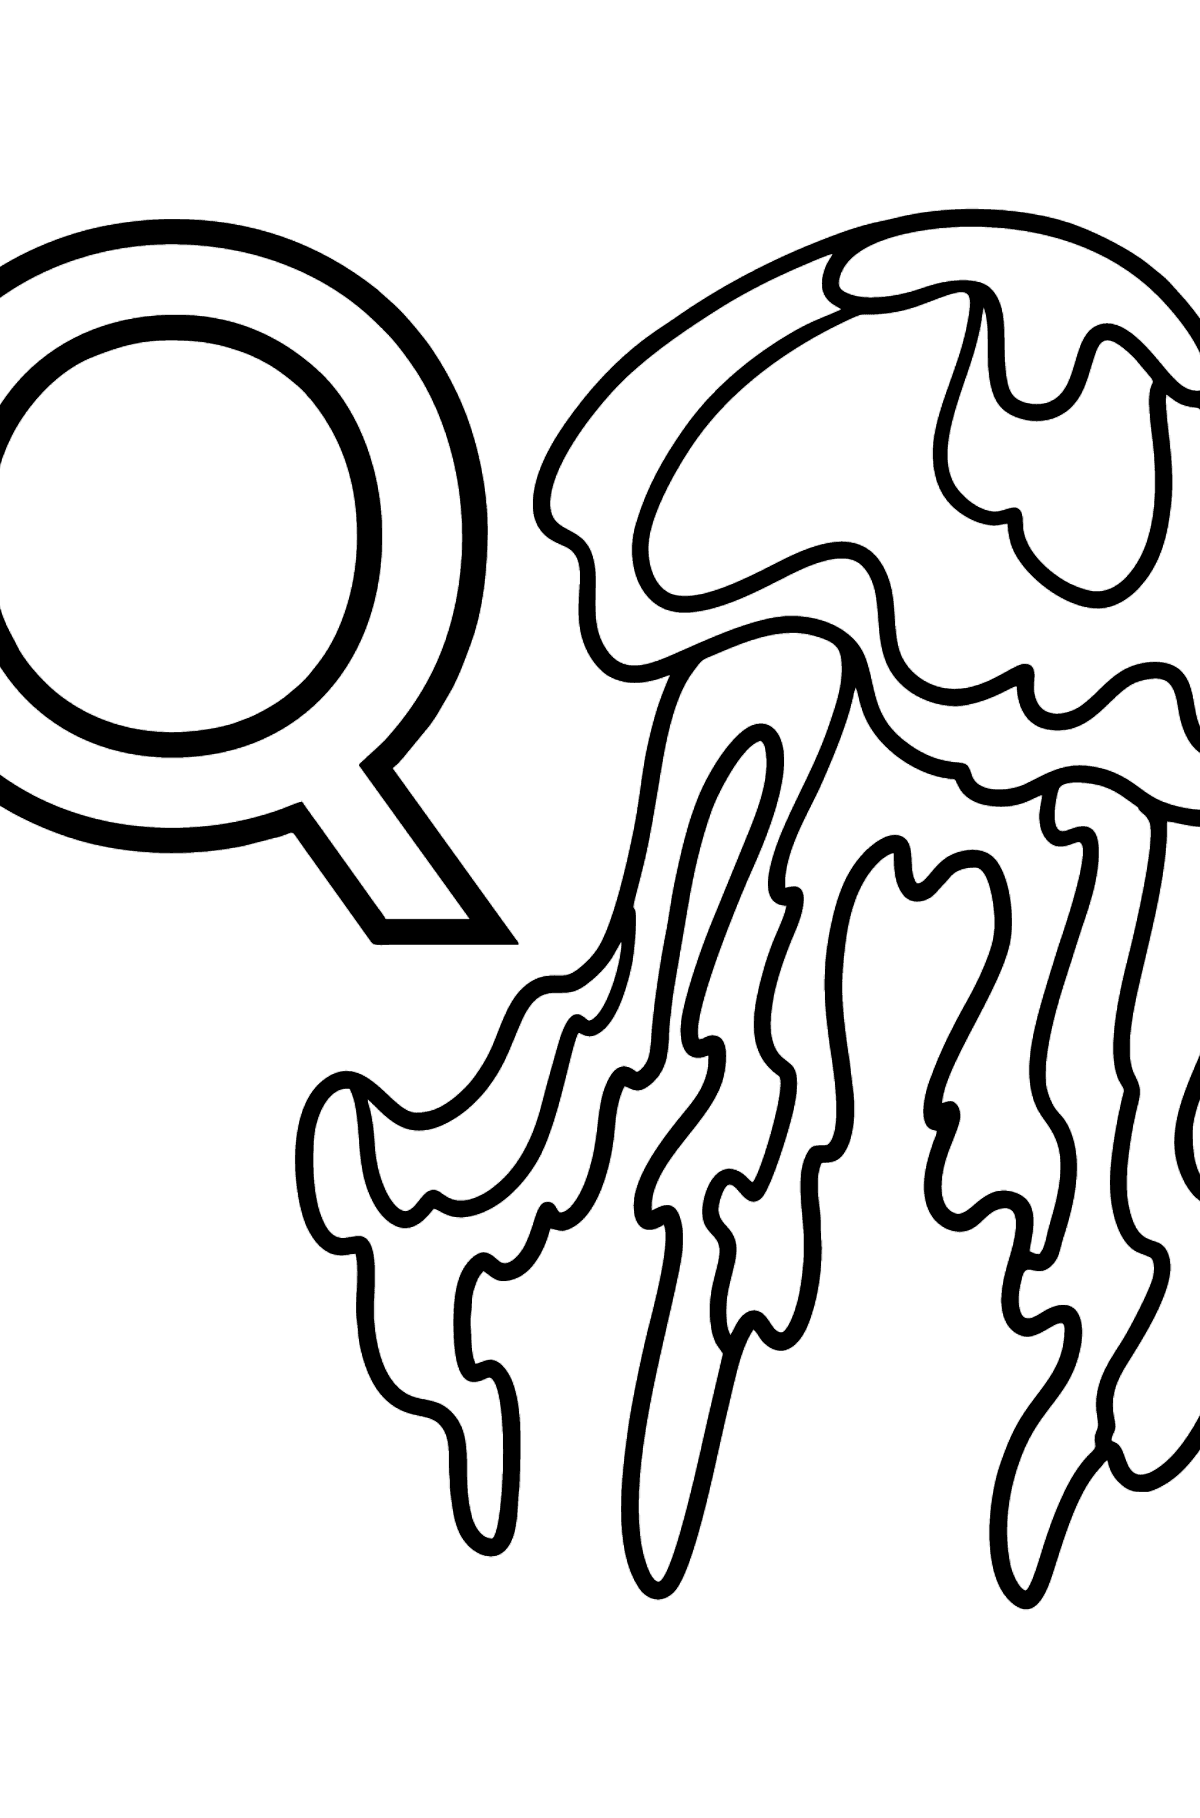 German Letter Q coloring pages - QUALLE - Coloring Pages for Kids